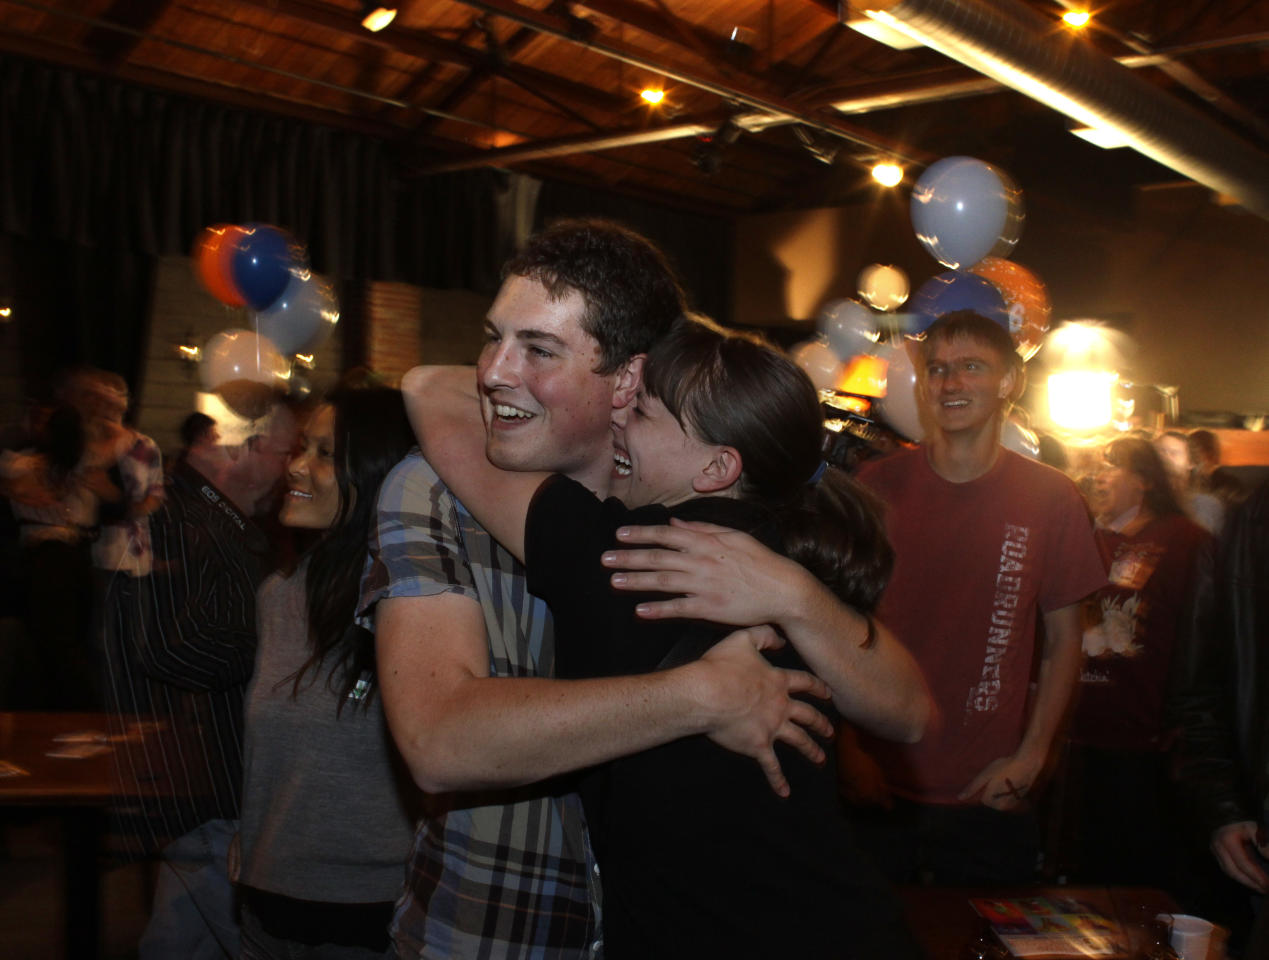 People attending an Amendment 64 watch party in a bar hug after a local television station announced the marijuana amendment's passage, in Denver, Colo., Tuesday, Nov. 6, 2012. The amendment would make it legal in Colorado for individuals to possess and for businesses to sell marijuana for recreational use. (AP Photo/Brennan Linsley)